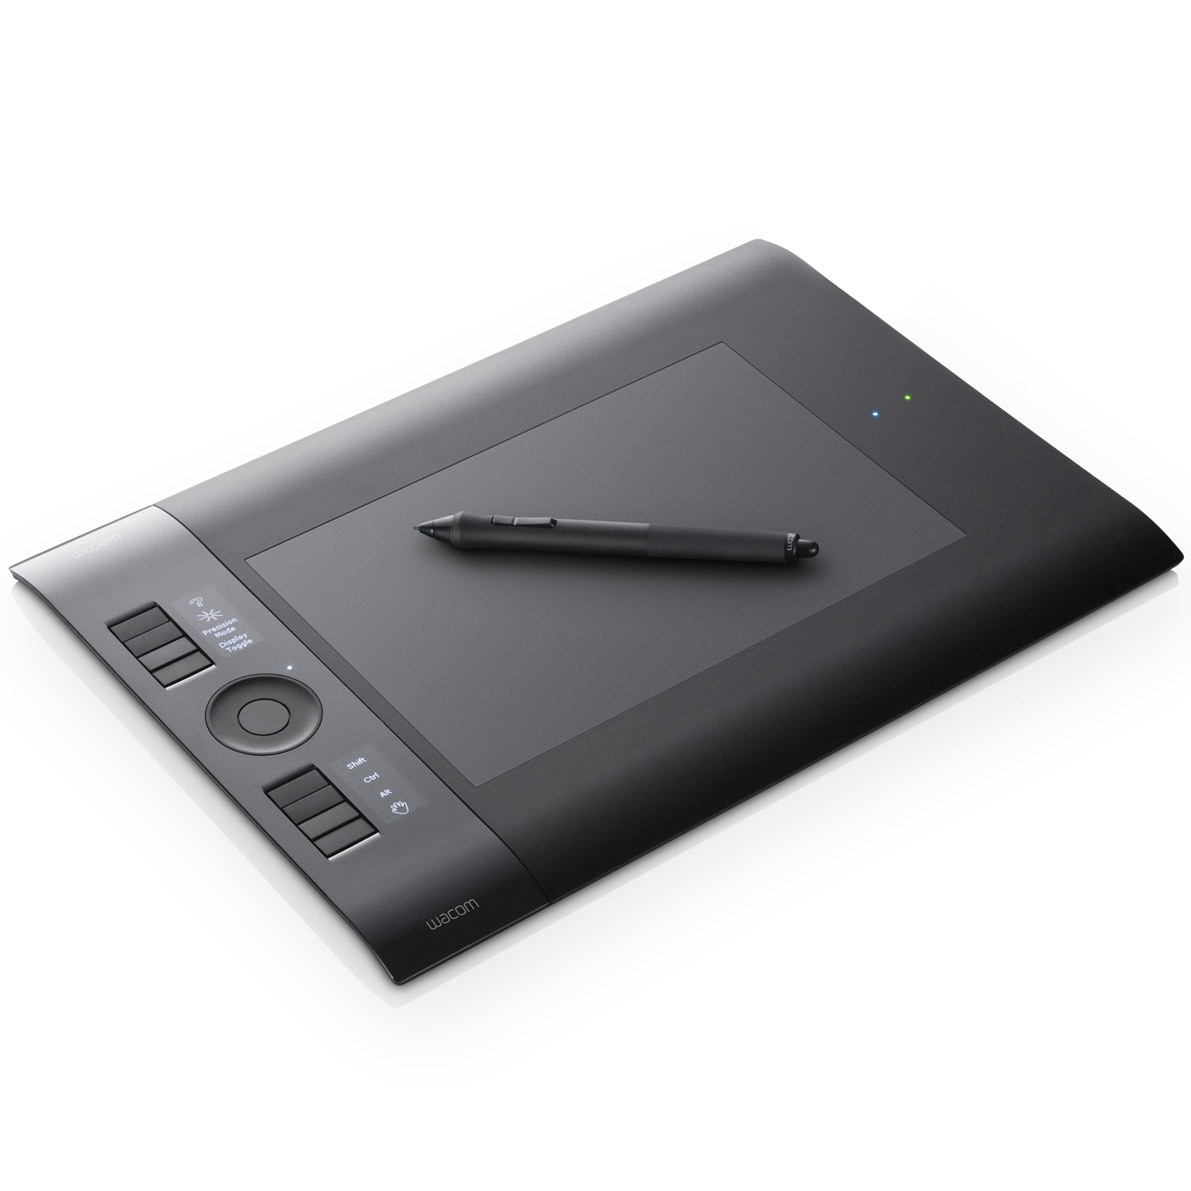 wacom intuos4 wireless tablette graphique wacom sur. Black Bedroom Furniture Sets. Home Design Ideas